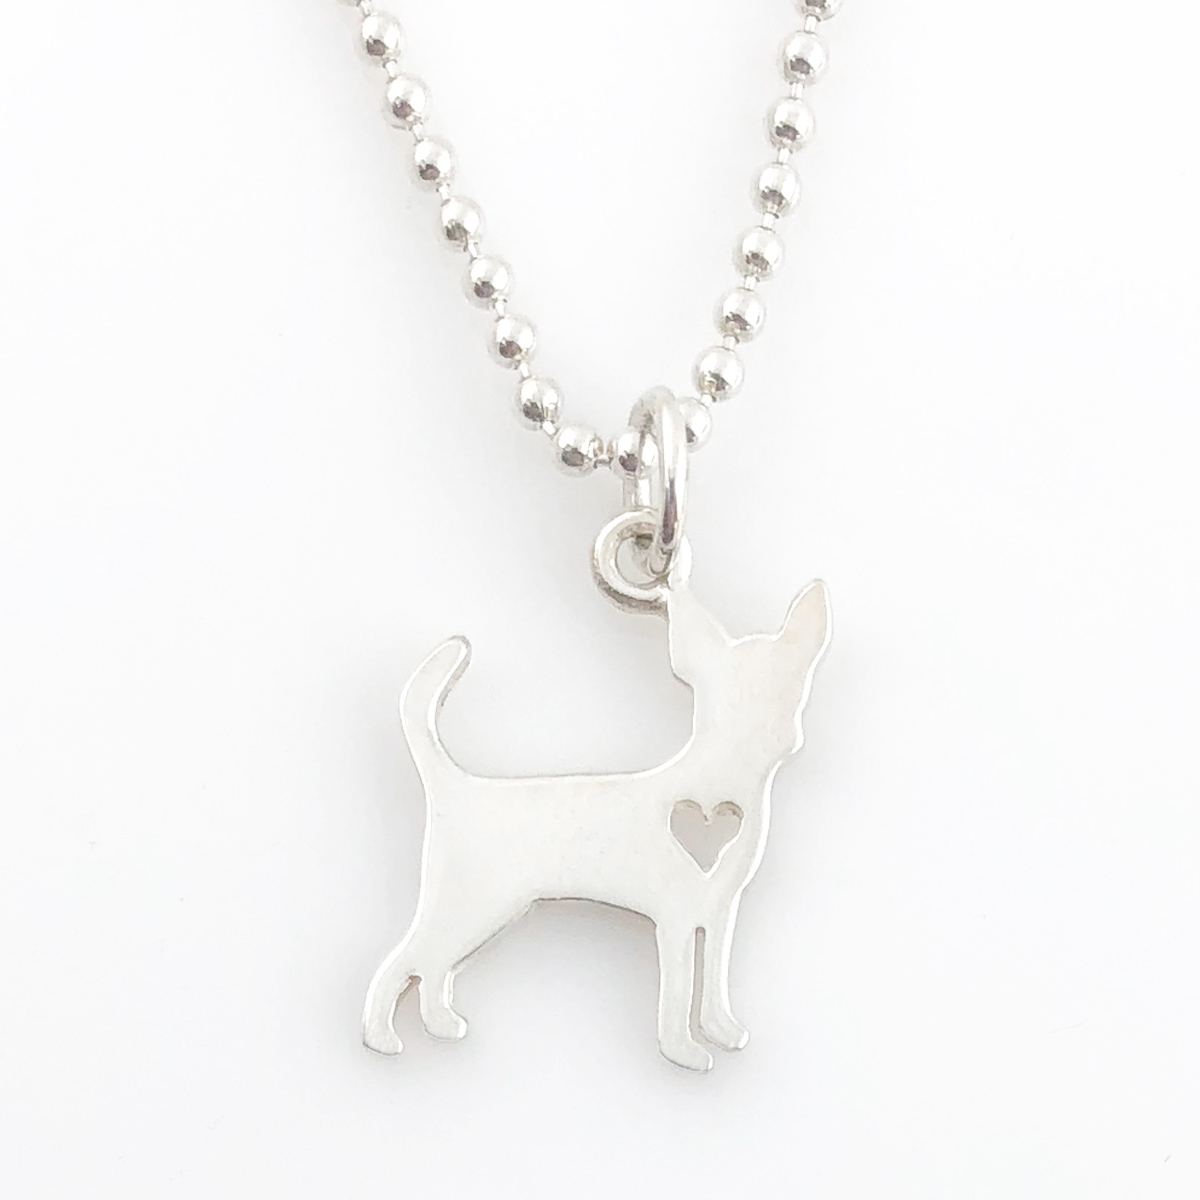 Chihuahua Simple Charm Necklace - Dog Necklace